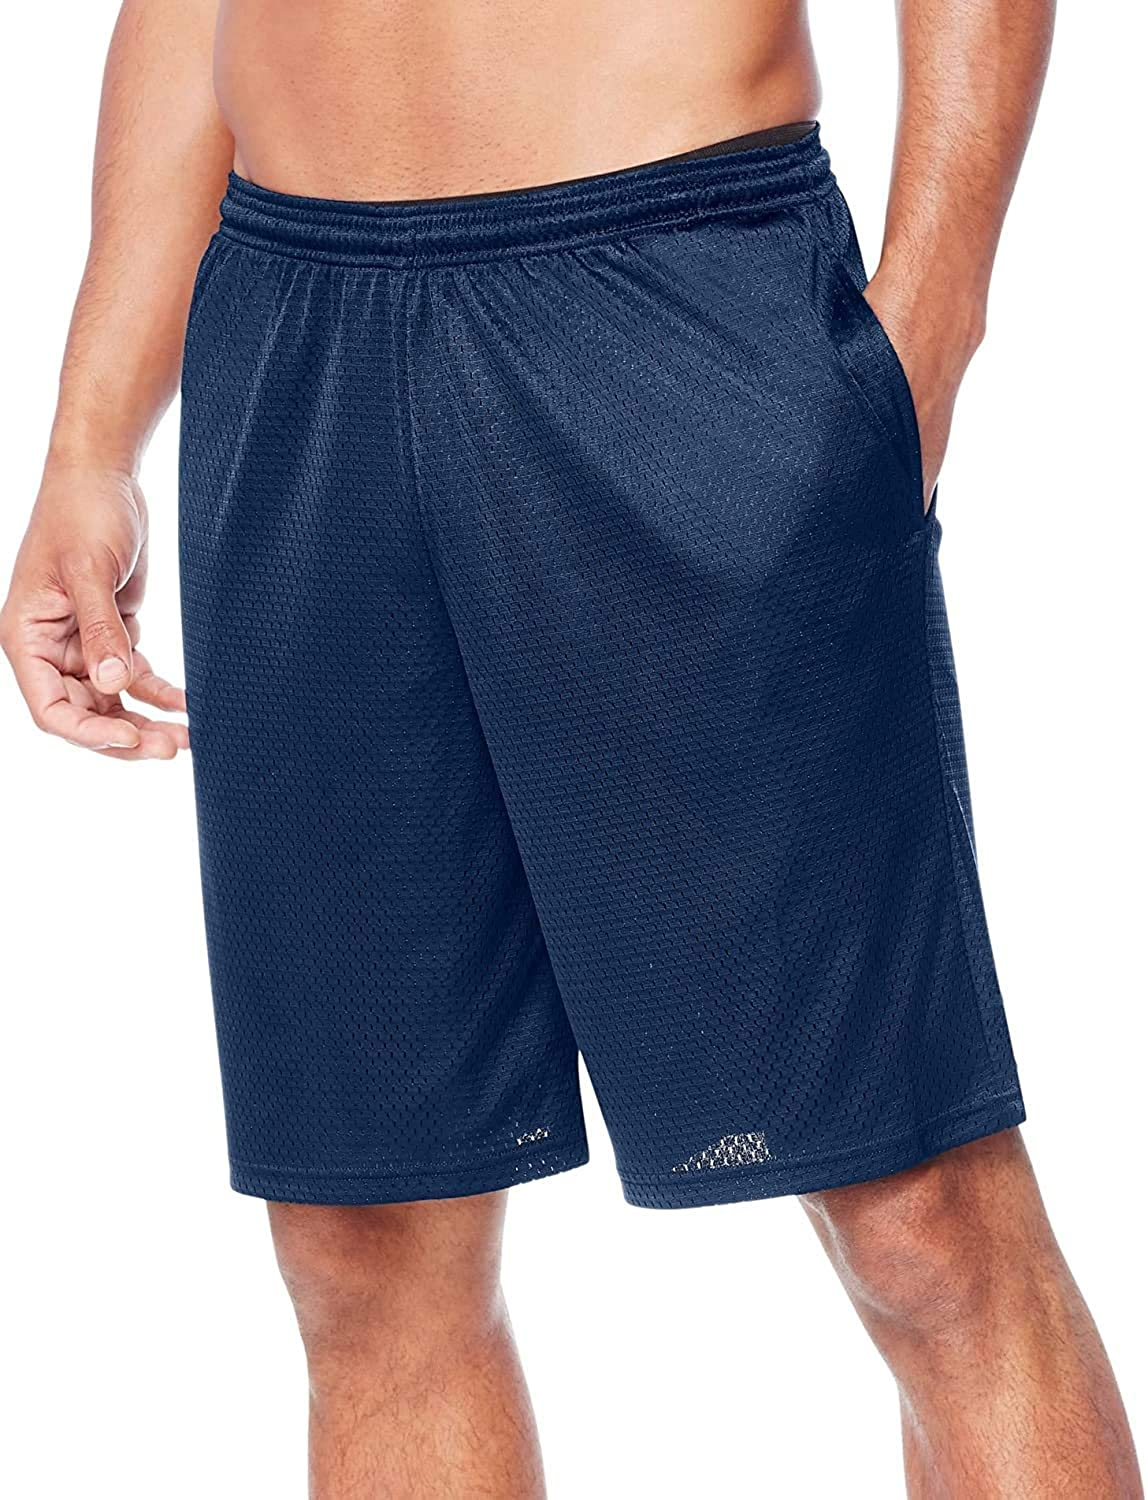 ToBeInStyle Quantity limited Men's Inner Special Campaign Mesh Drawstring Shorts